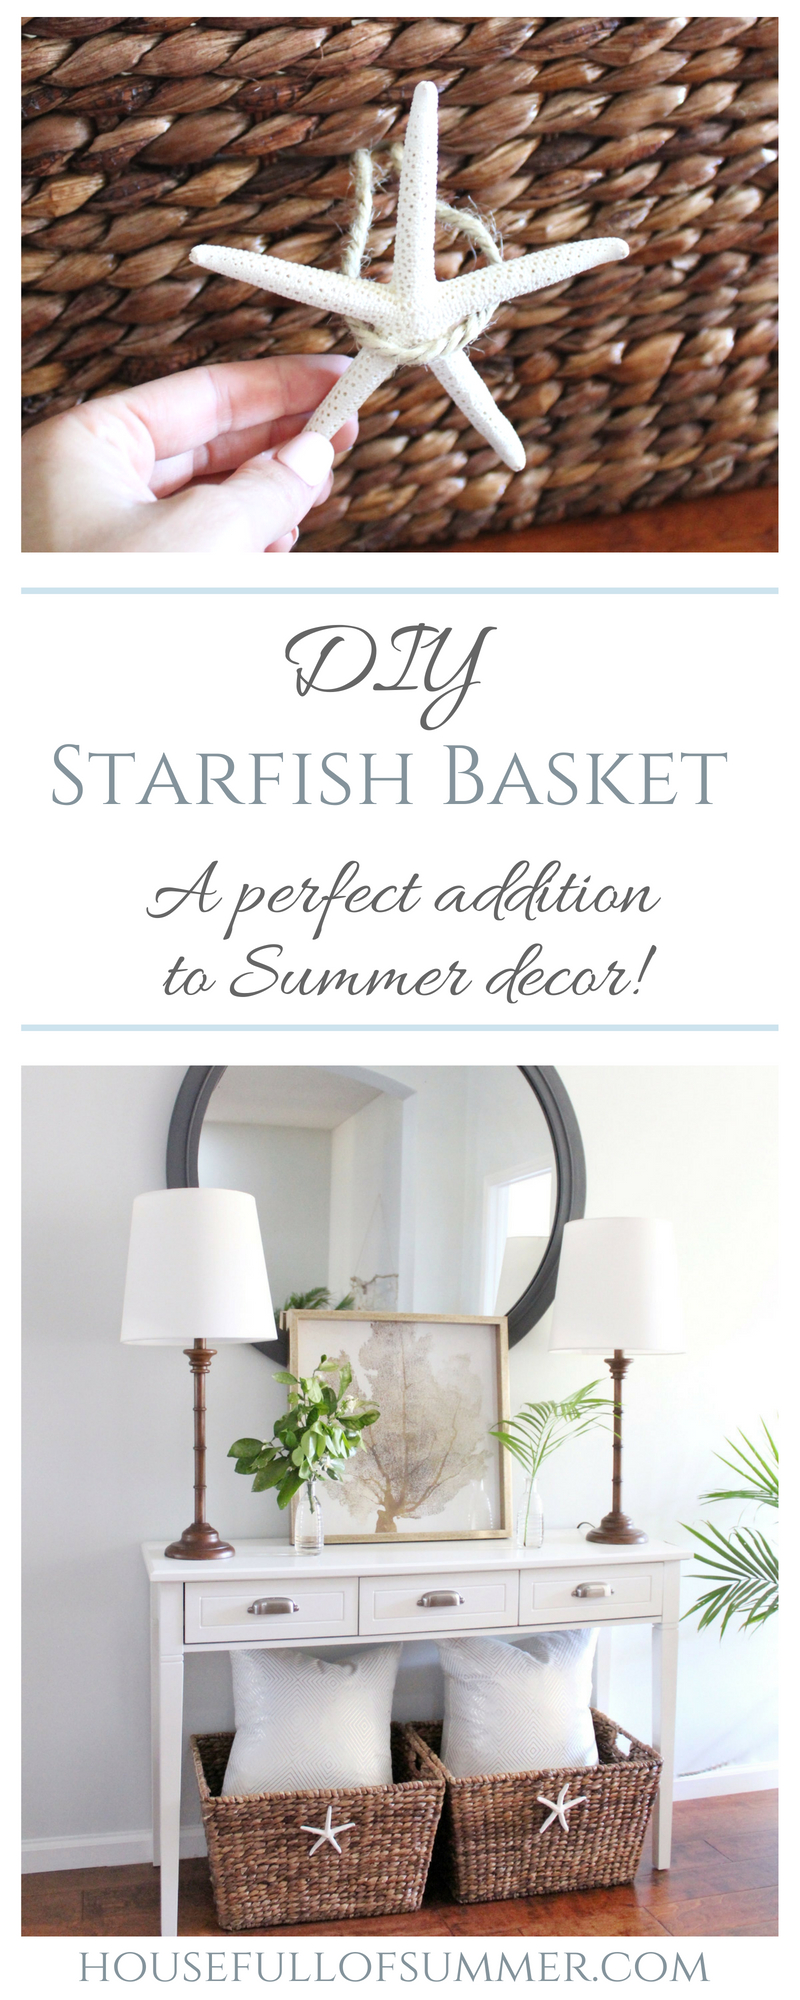 DIY Starfish Basket - A Perfect Addition to Summer Decor! | House Full of Summer blog, Coastal Home & Lifestyle, easy summer decor ideas, coastal decor, cheap decorating on a budget, Florida home decor ideas, foyer decor, tropical decor, chinoiserie chic, bamboo lamps #housefullofsummer #coastaldecor